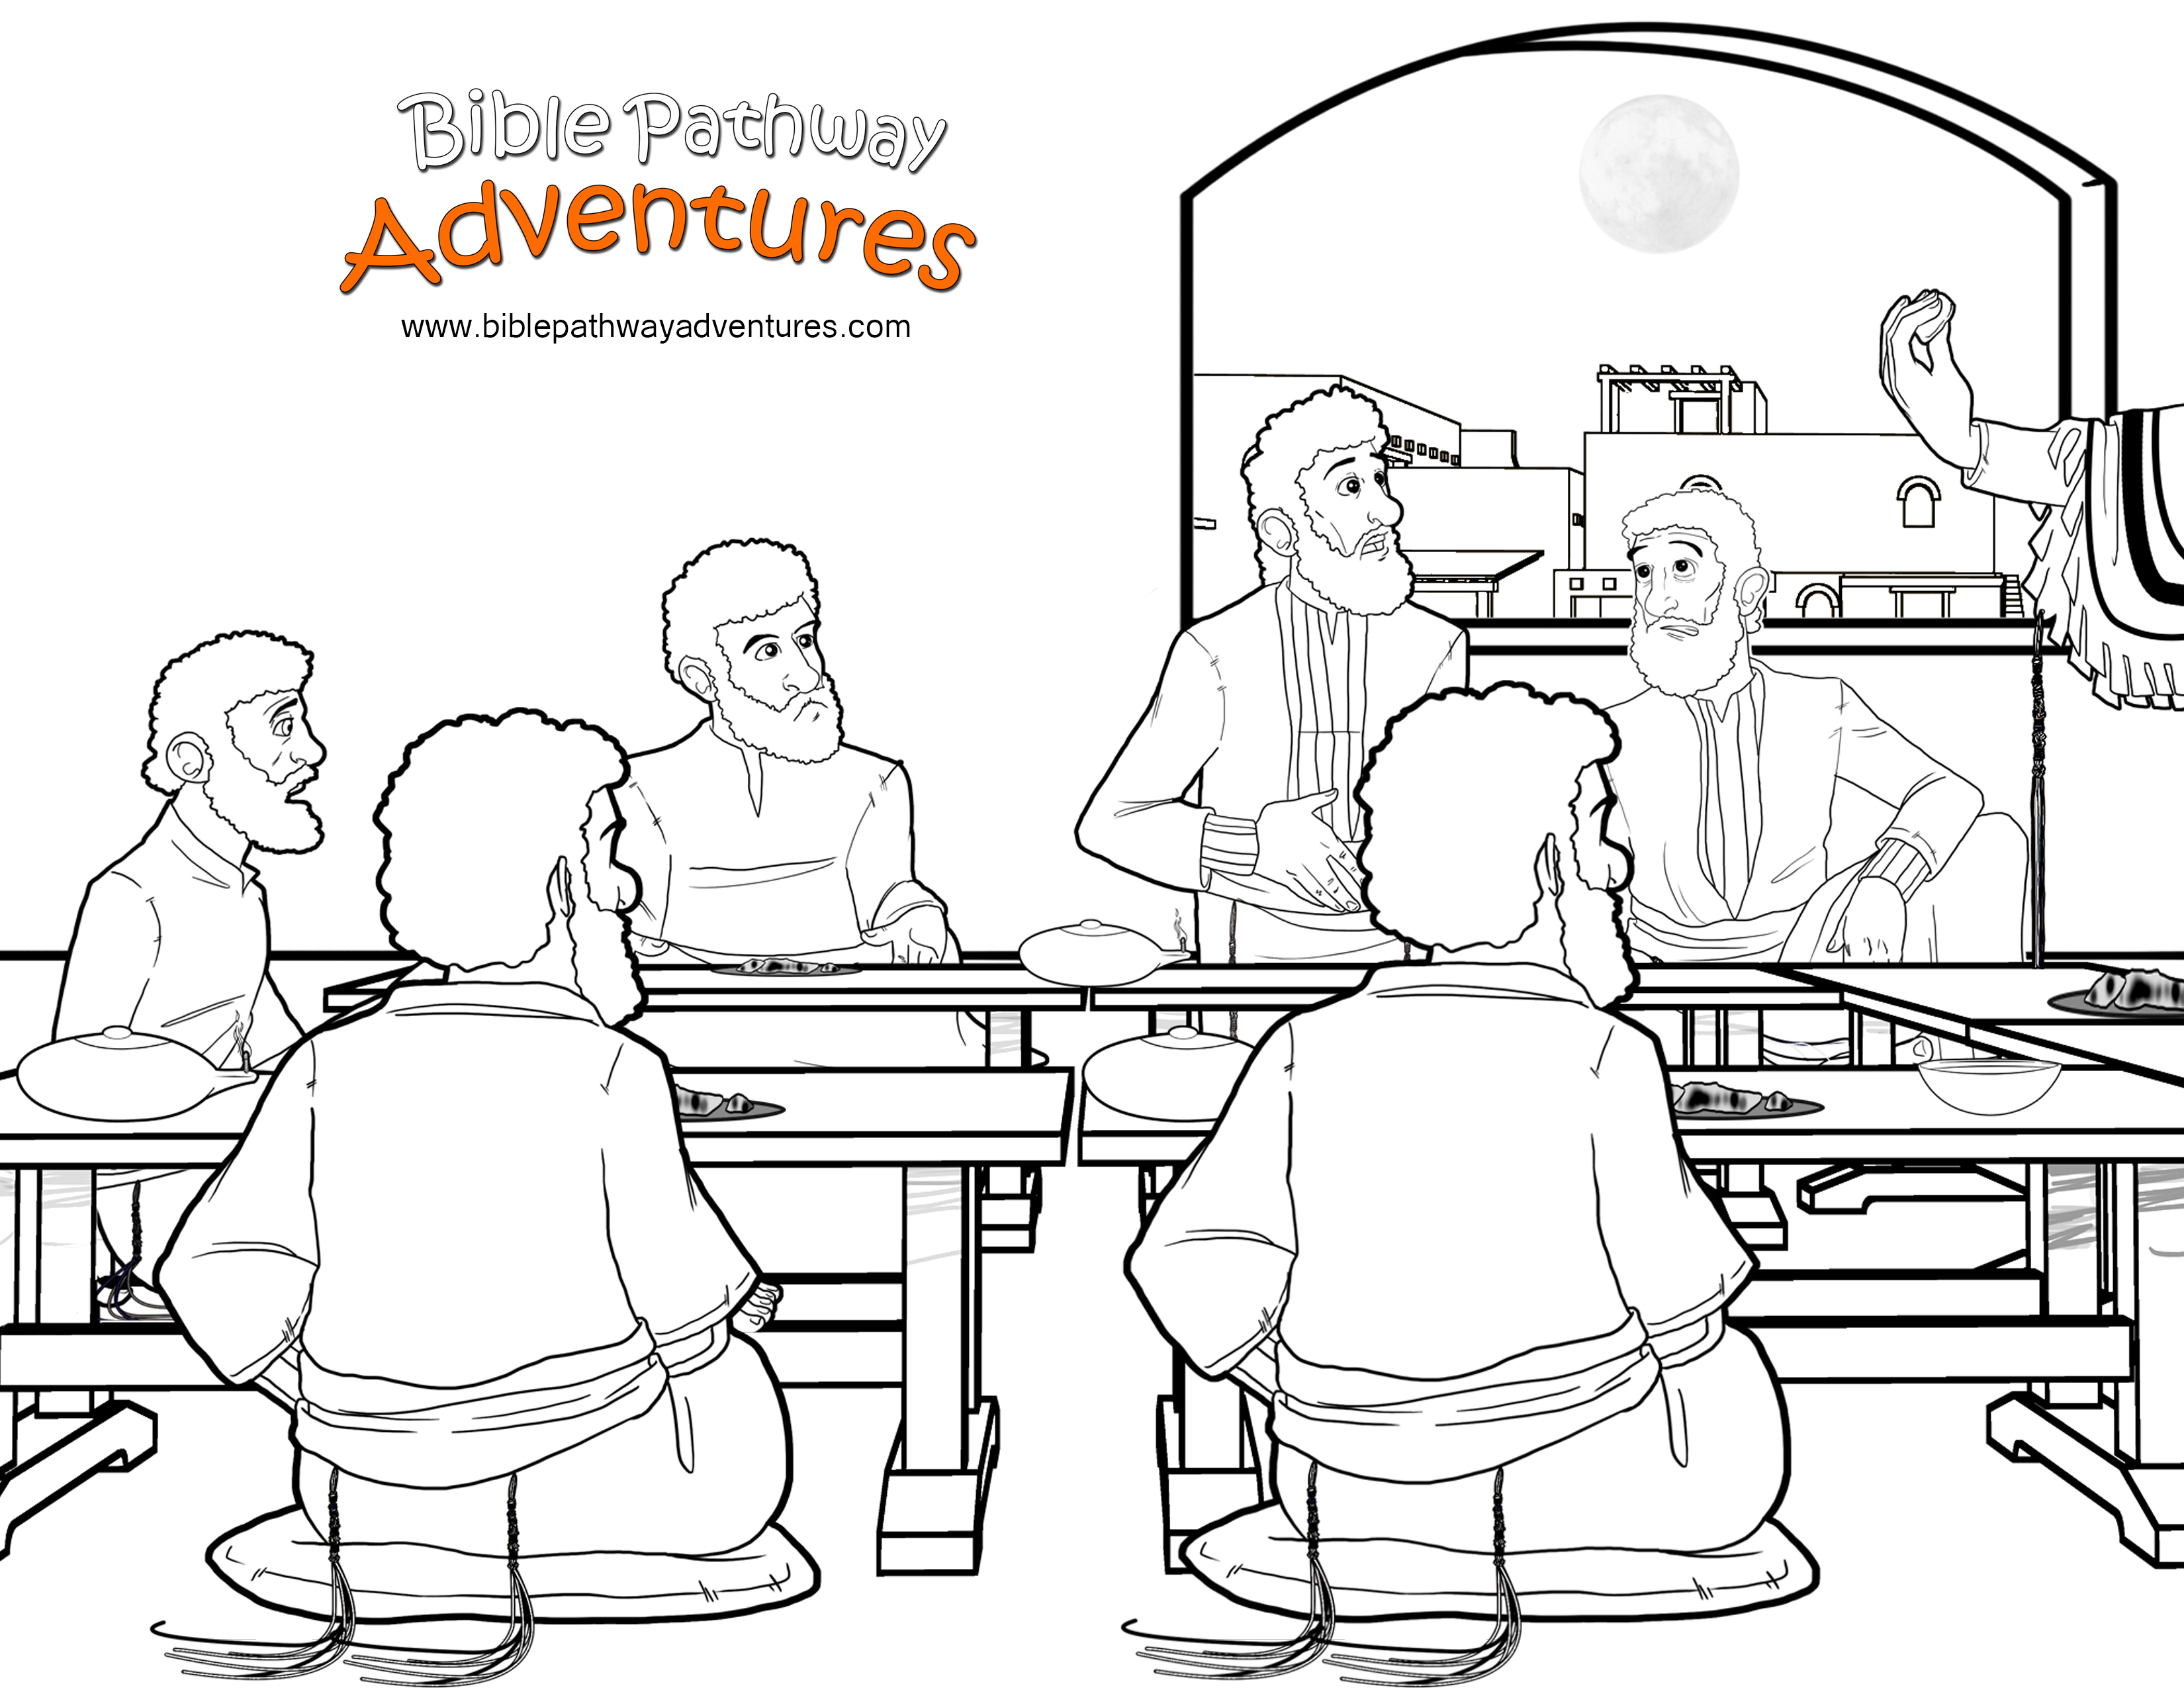 Free bible story coloring pages for children - Free Bible Activities For Kids